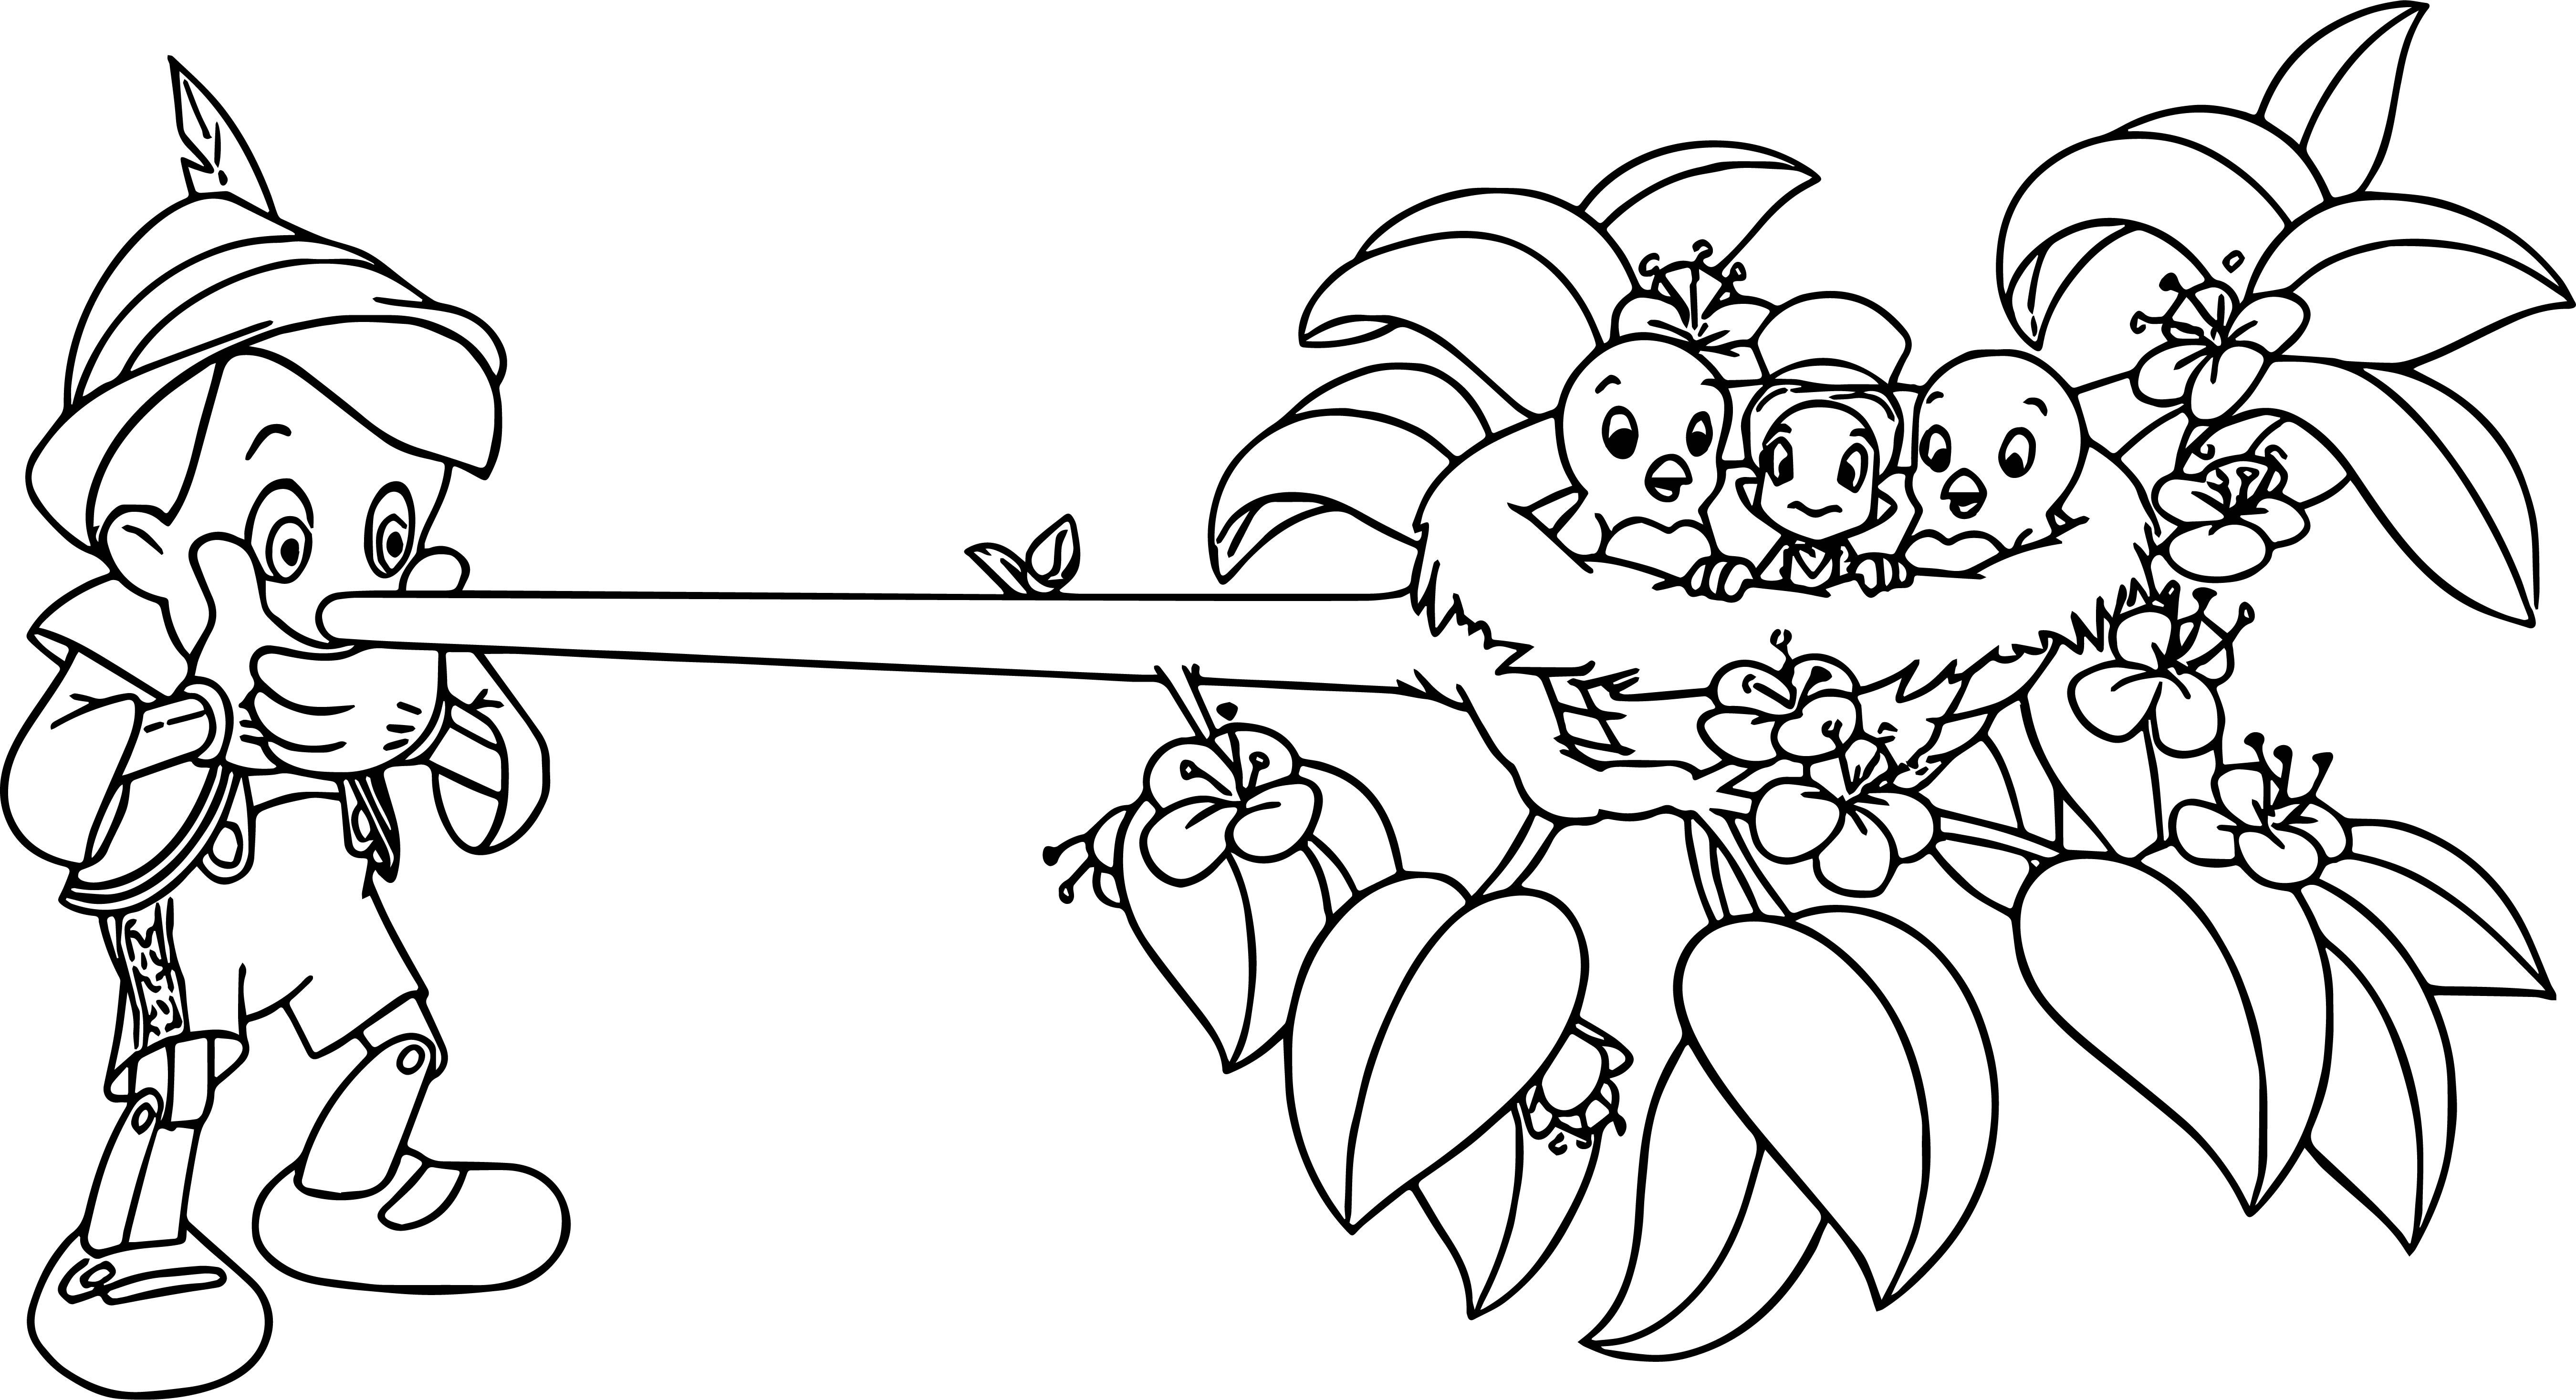 Cool Pinocchio And Jiminy Nest Nose Coloring Page Coloring Pages Coloring Pages For Kids Coloring Books